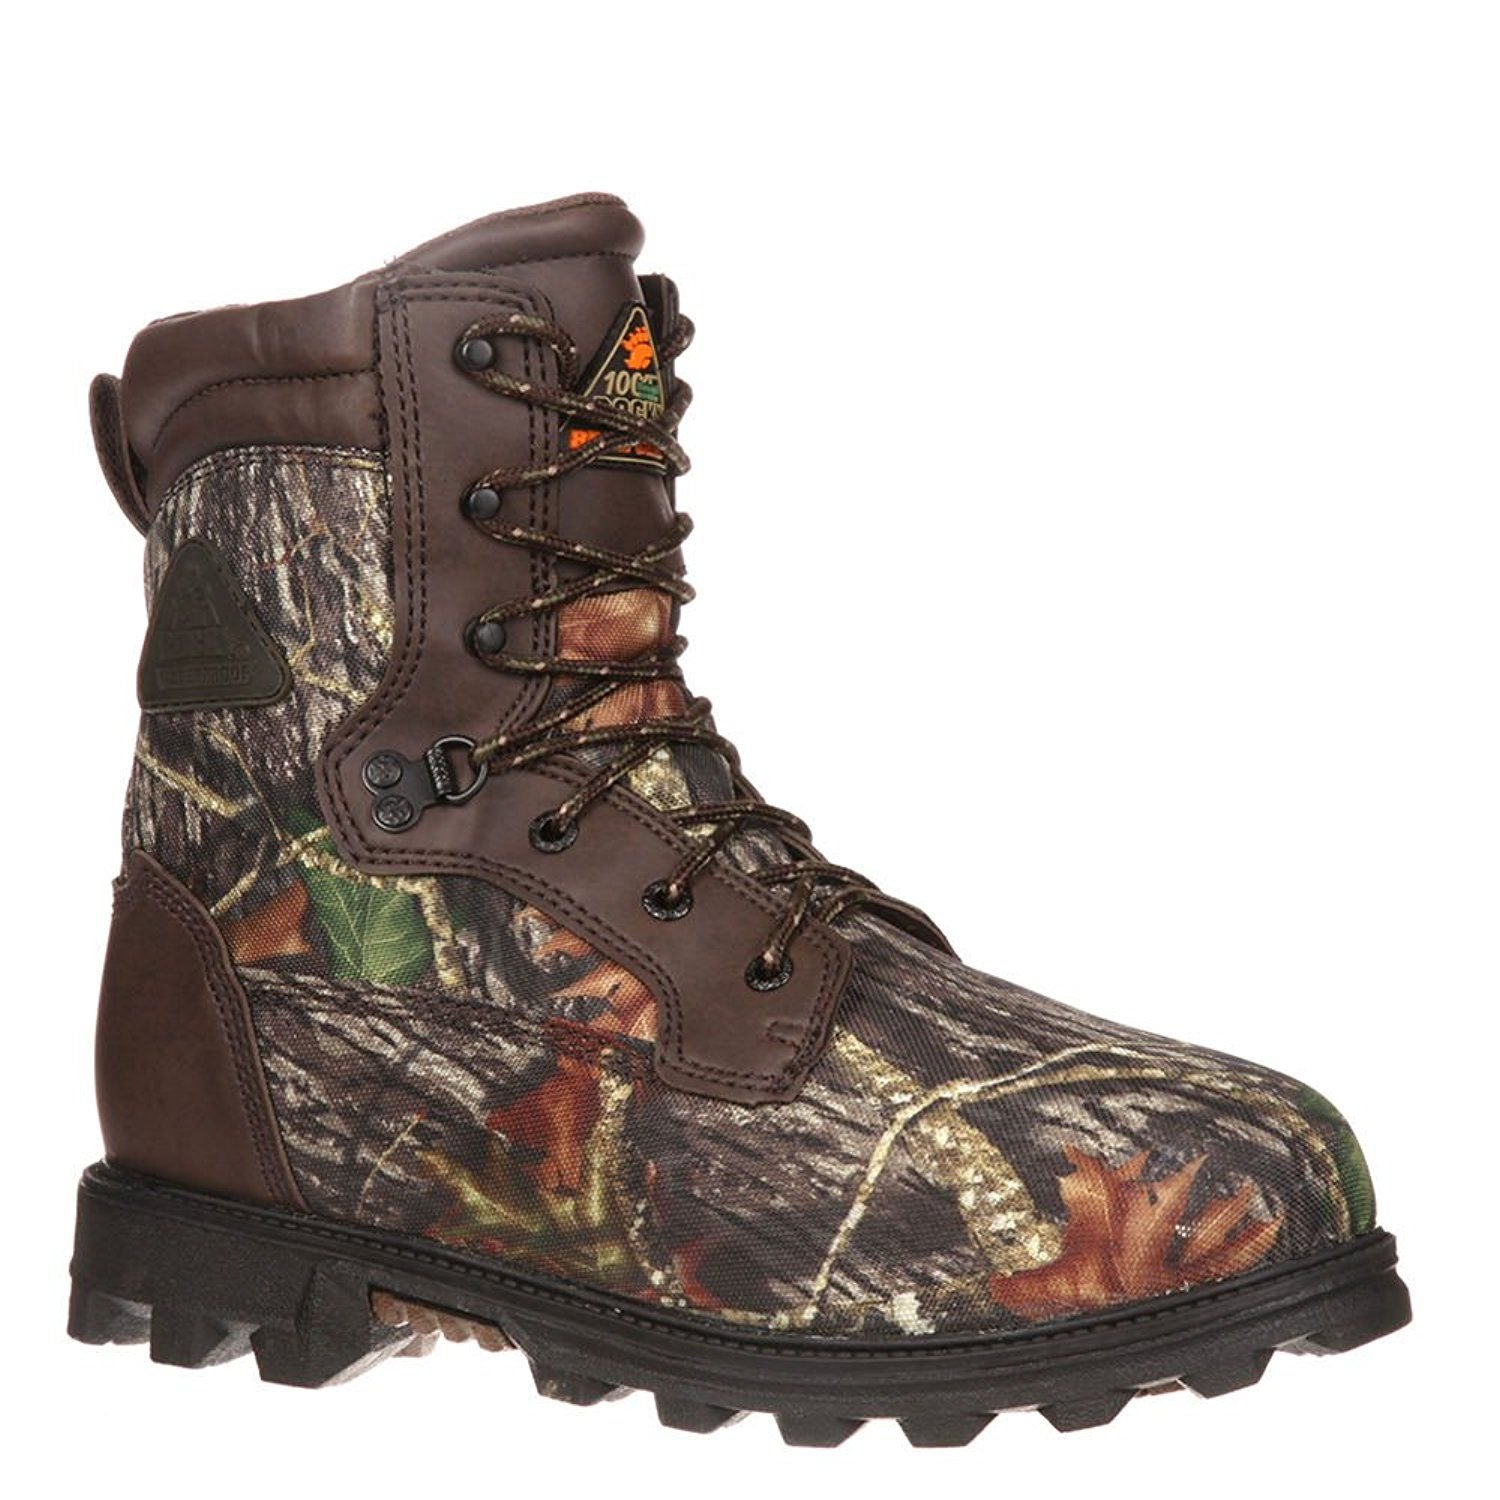 gram Insulated Waterproof Boots Mossy